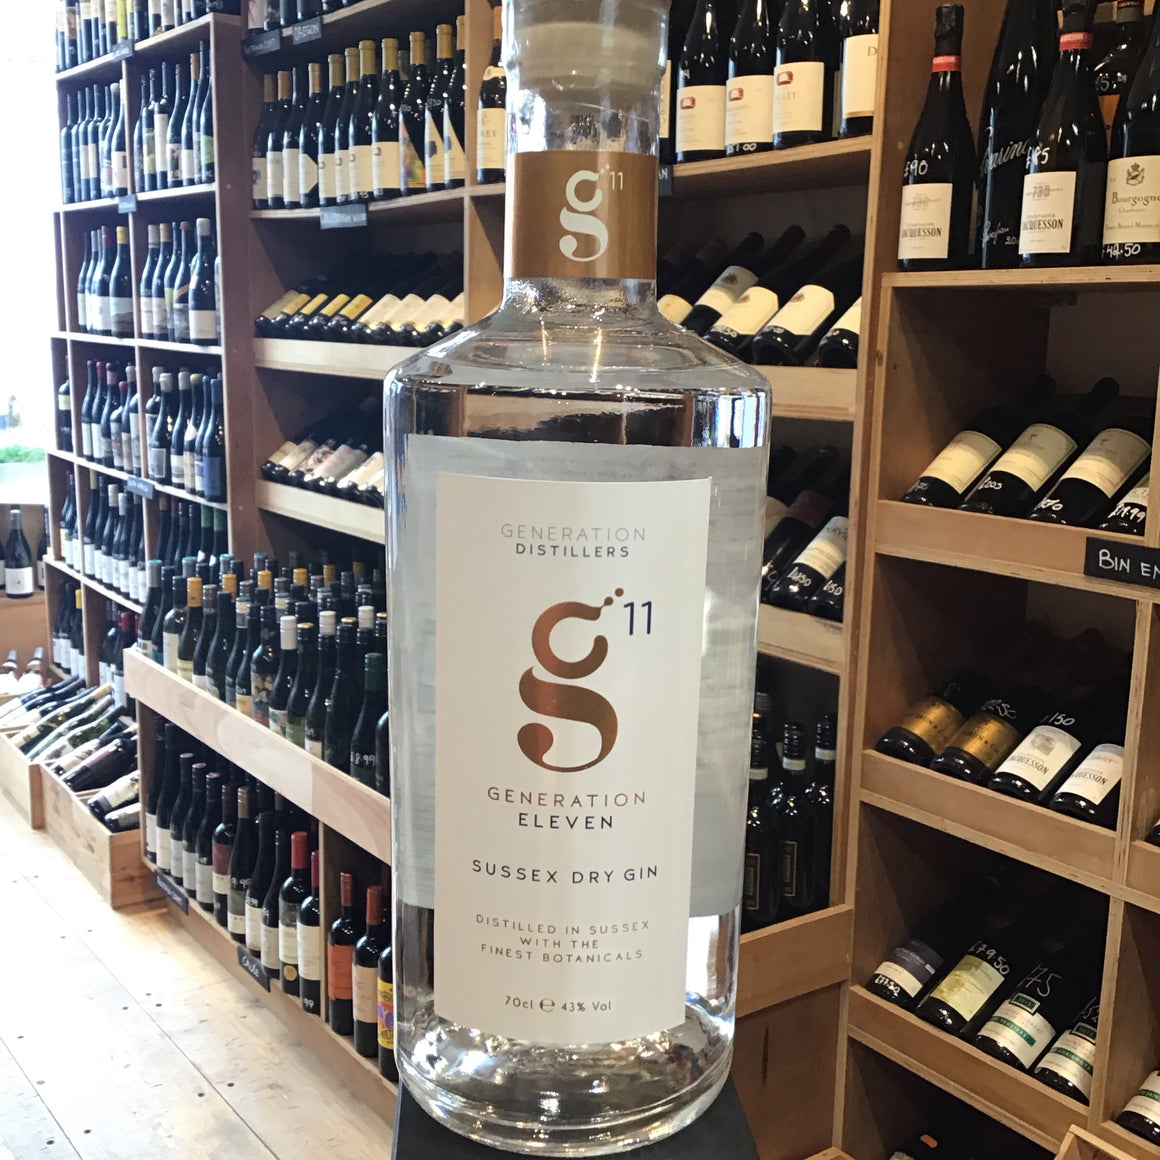 Generation 11 Sussex Dry Gin 70cl 43%